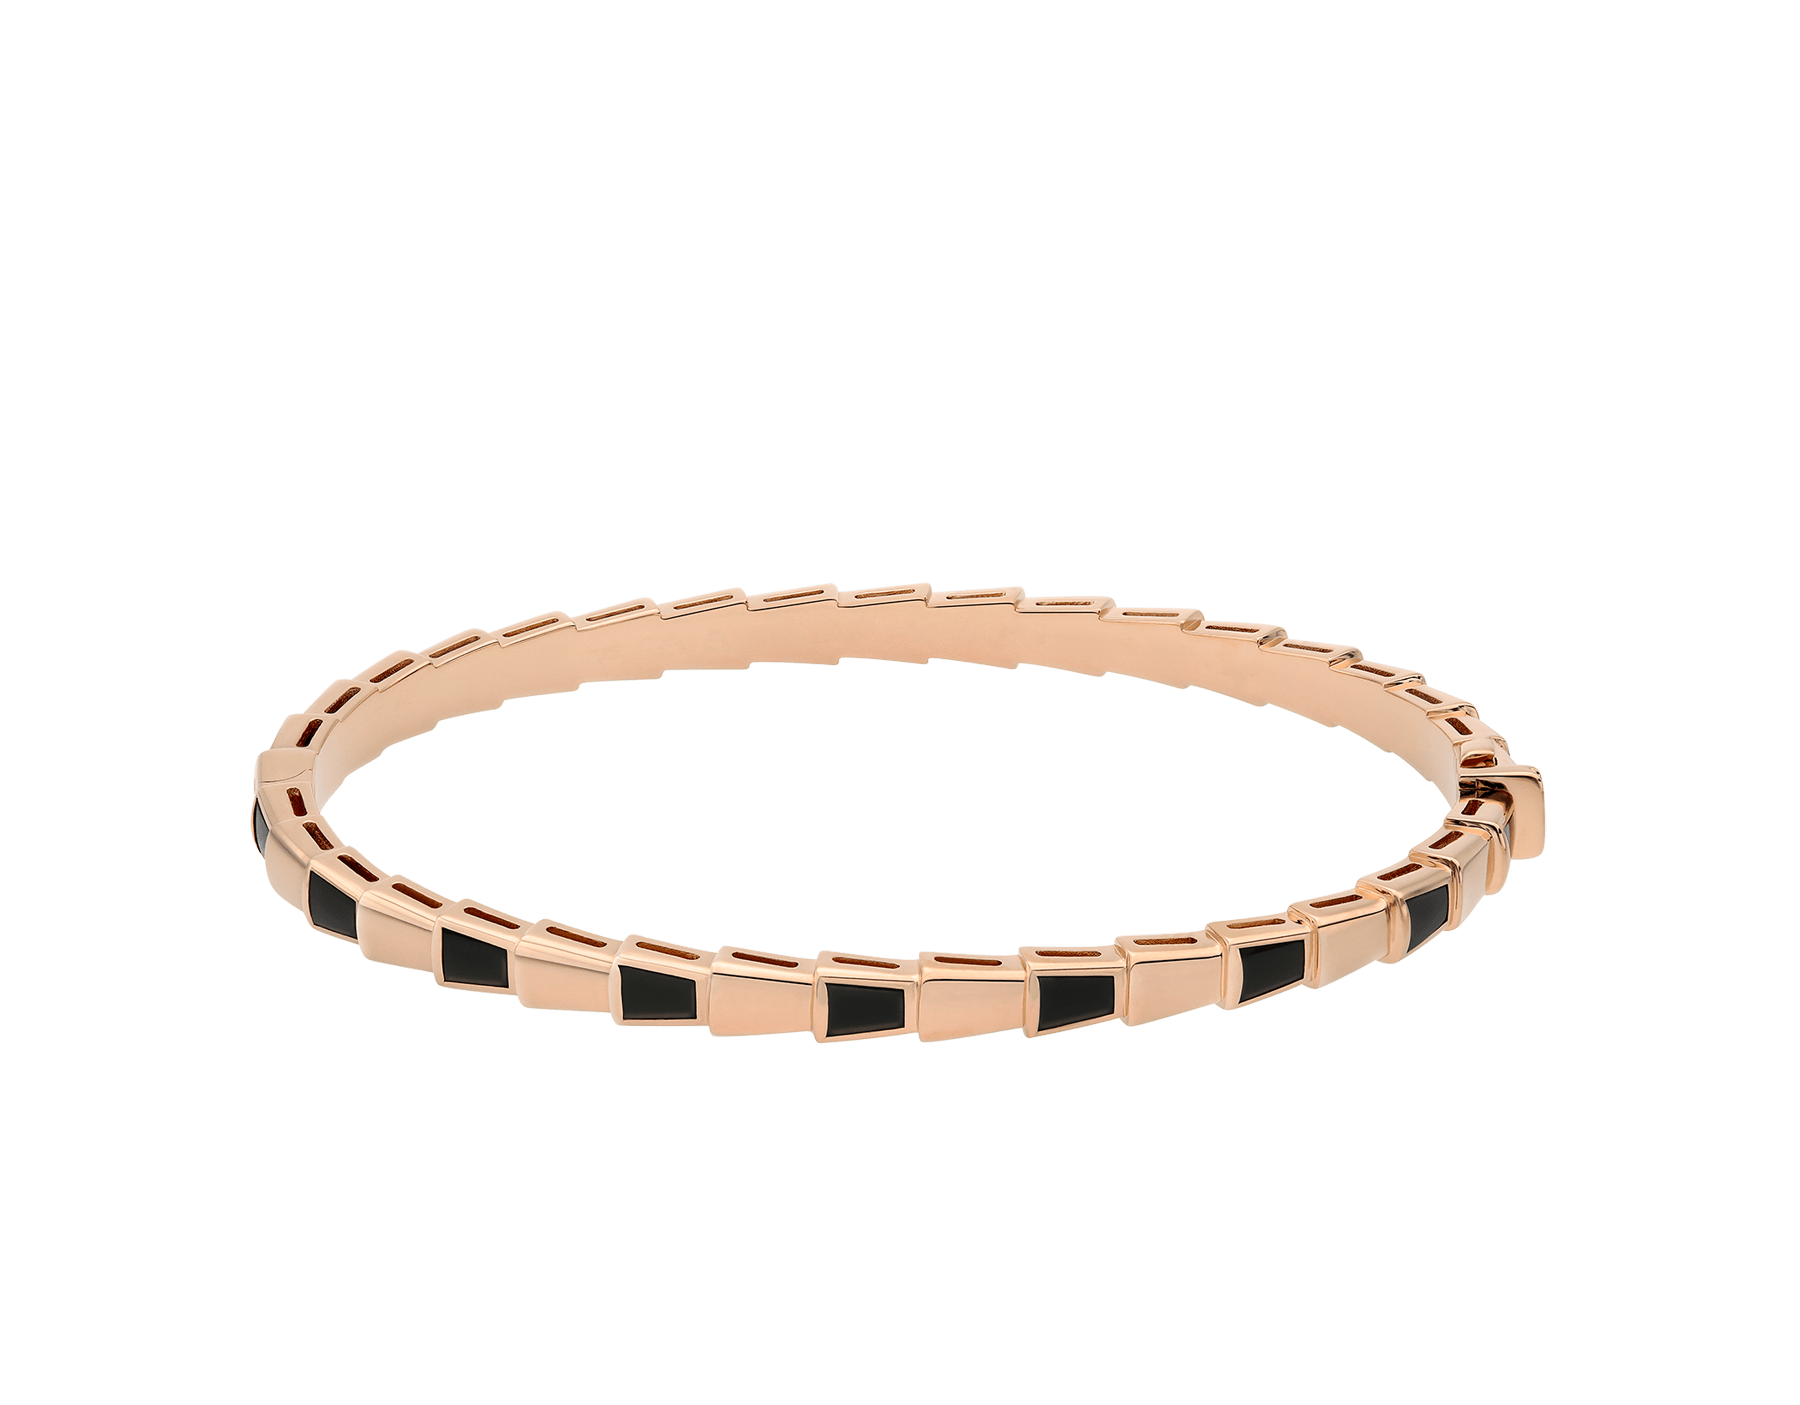 Serpenti Viper 18 kt rose gold thin bangle bracelet set with onyx elements BR858609 image 2